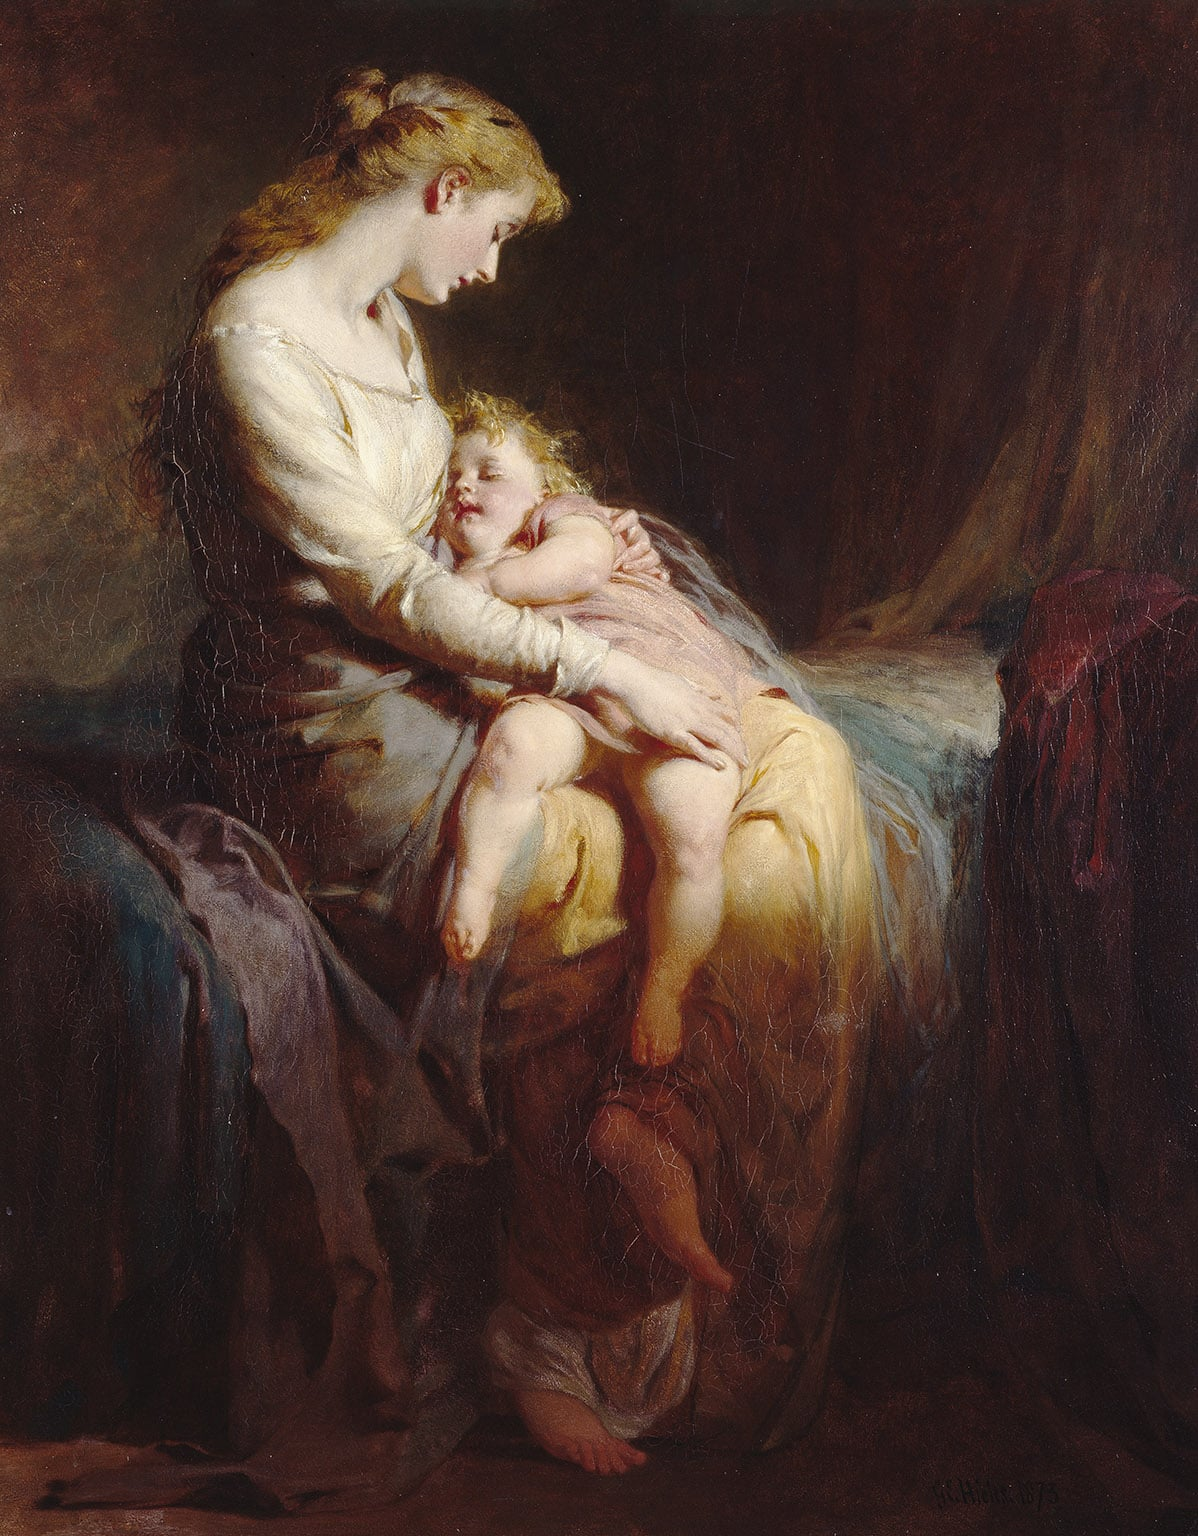 1. George Elgar Hicks, Mother and Child, 1873 - © Manchester City Art Gallery